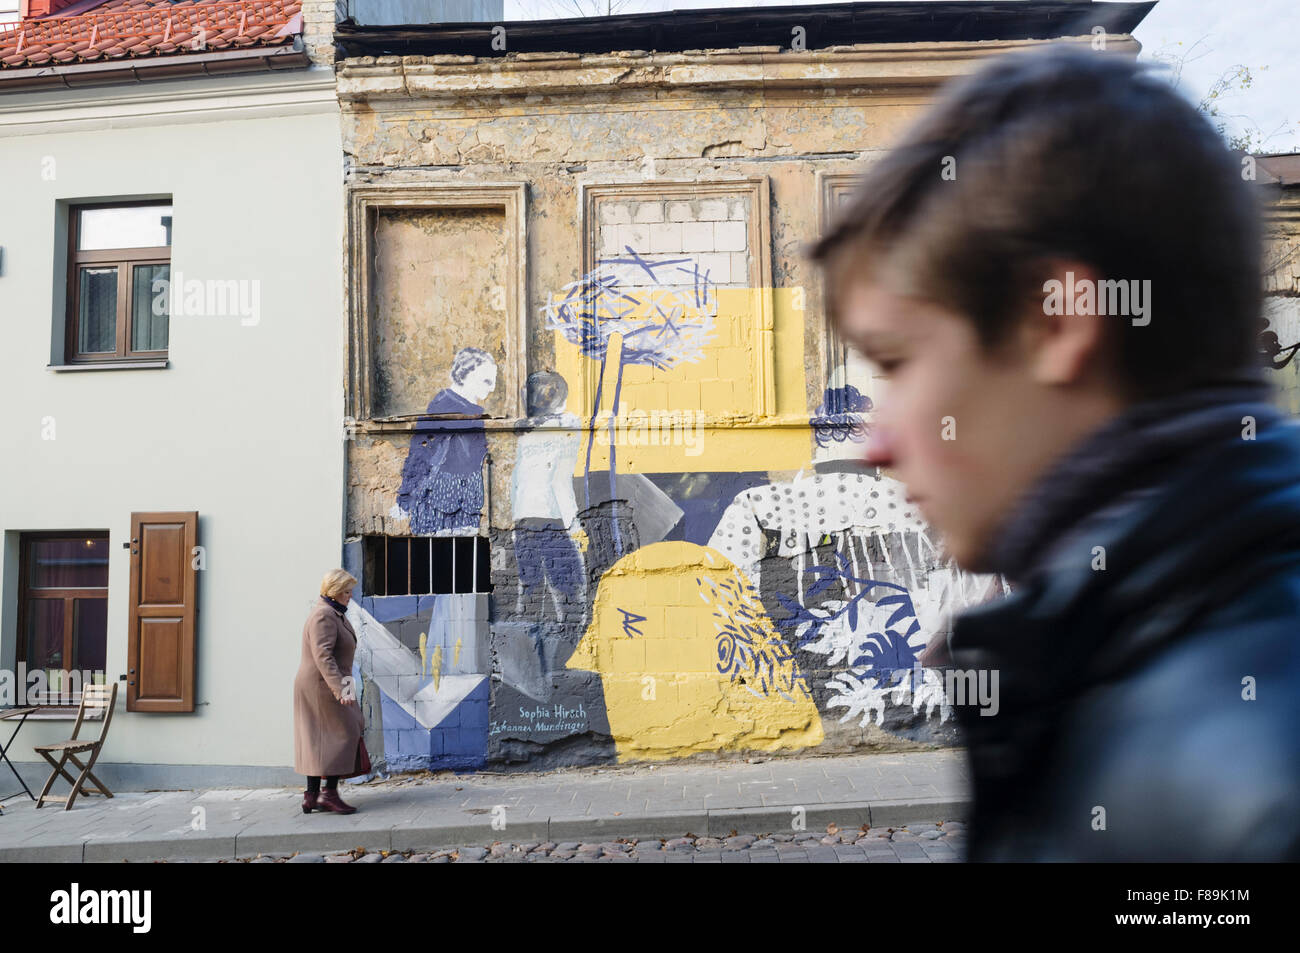 People walk past graffitis at the self-declared independent republic of Uzupis bohemian district. Vilnius, Lithuania - Stock Image